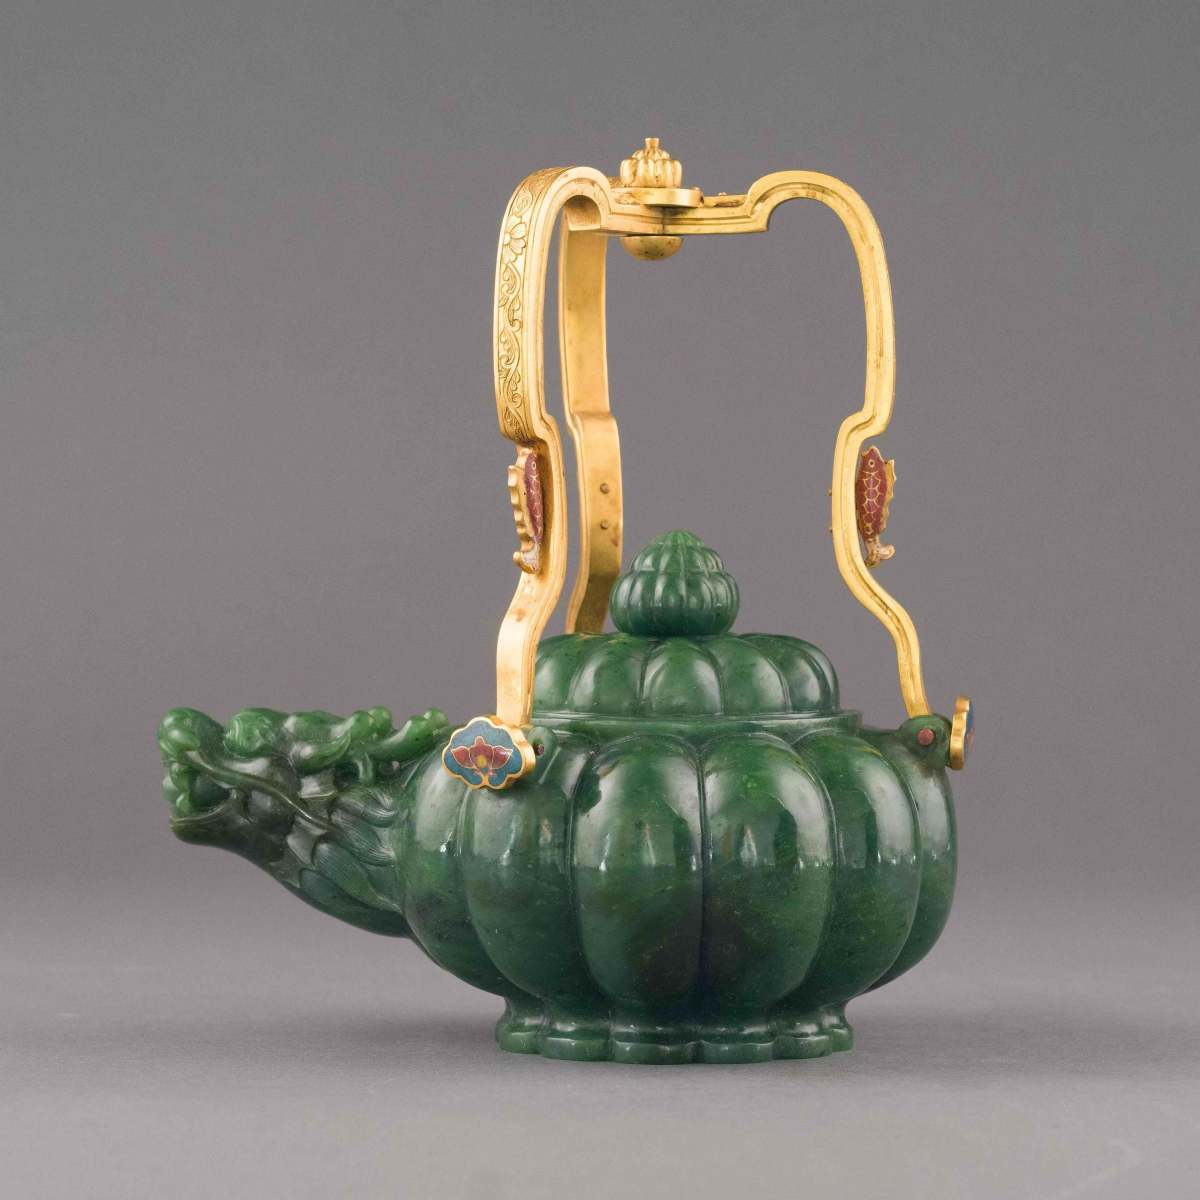 """Green jade gilt bronze-handle tea pot, 15th Century Ming Dynasty Period, China. In the shape of a plum, with gilt bronze tripod handle, inlaid in cloisonne, multi-lobed vessel, with convex spigot issuing forth into a small aperture. Crown-shaped lid partitioned into lobed sections, with lobed patterned finial. Each gilt bronze tripod arm is fashioned with a cloisonne encrusted lotus flower at the joint, followed midway up the arm by imperial dragon festoon. The main body carved in melon fruit shape, with the dome lid finial bud, with original box; 11"""" h, 8-3/4"""" w, $3,000."""